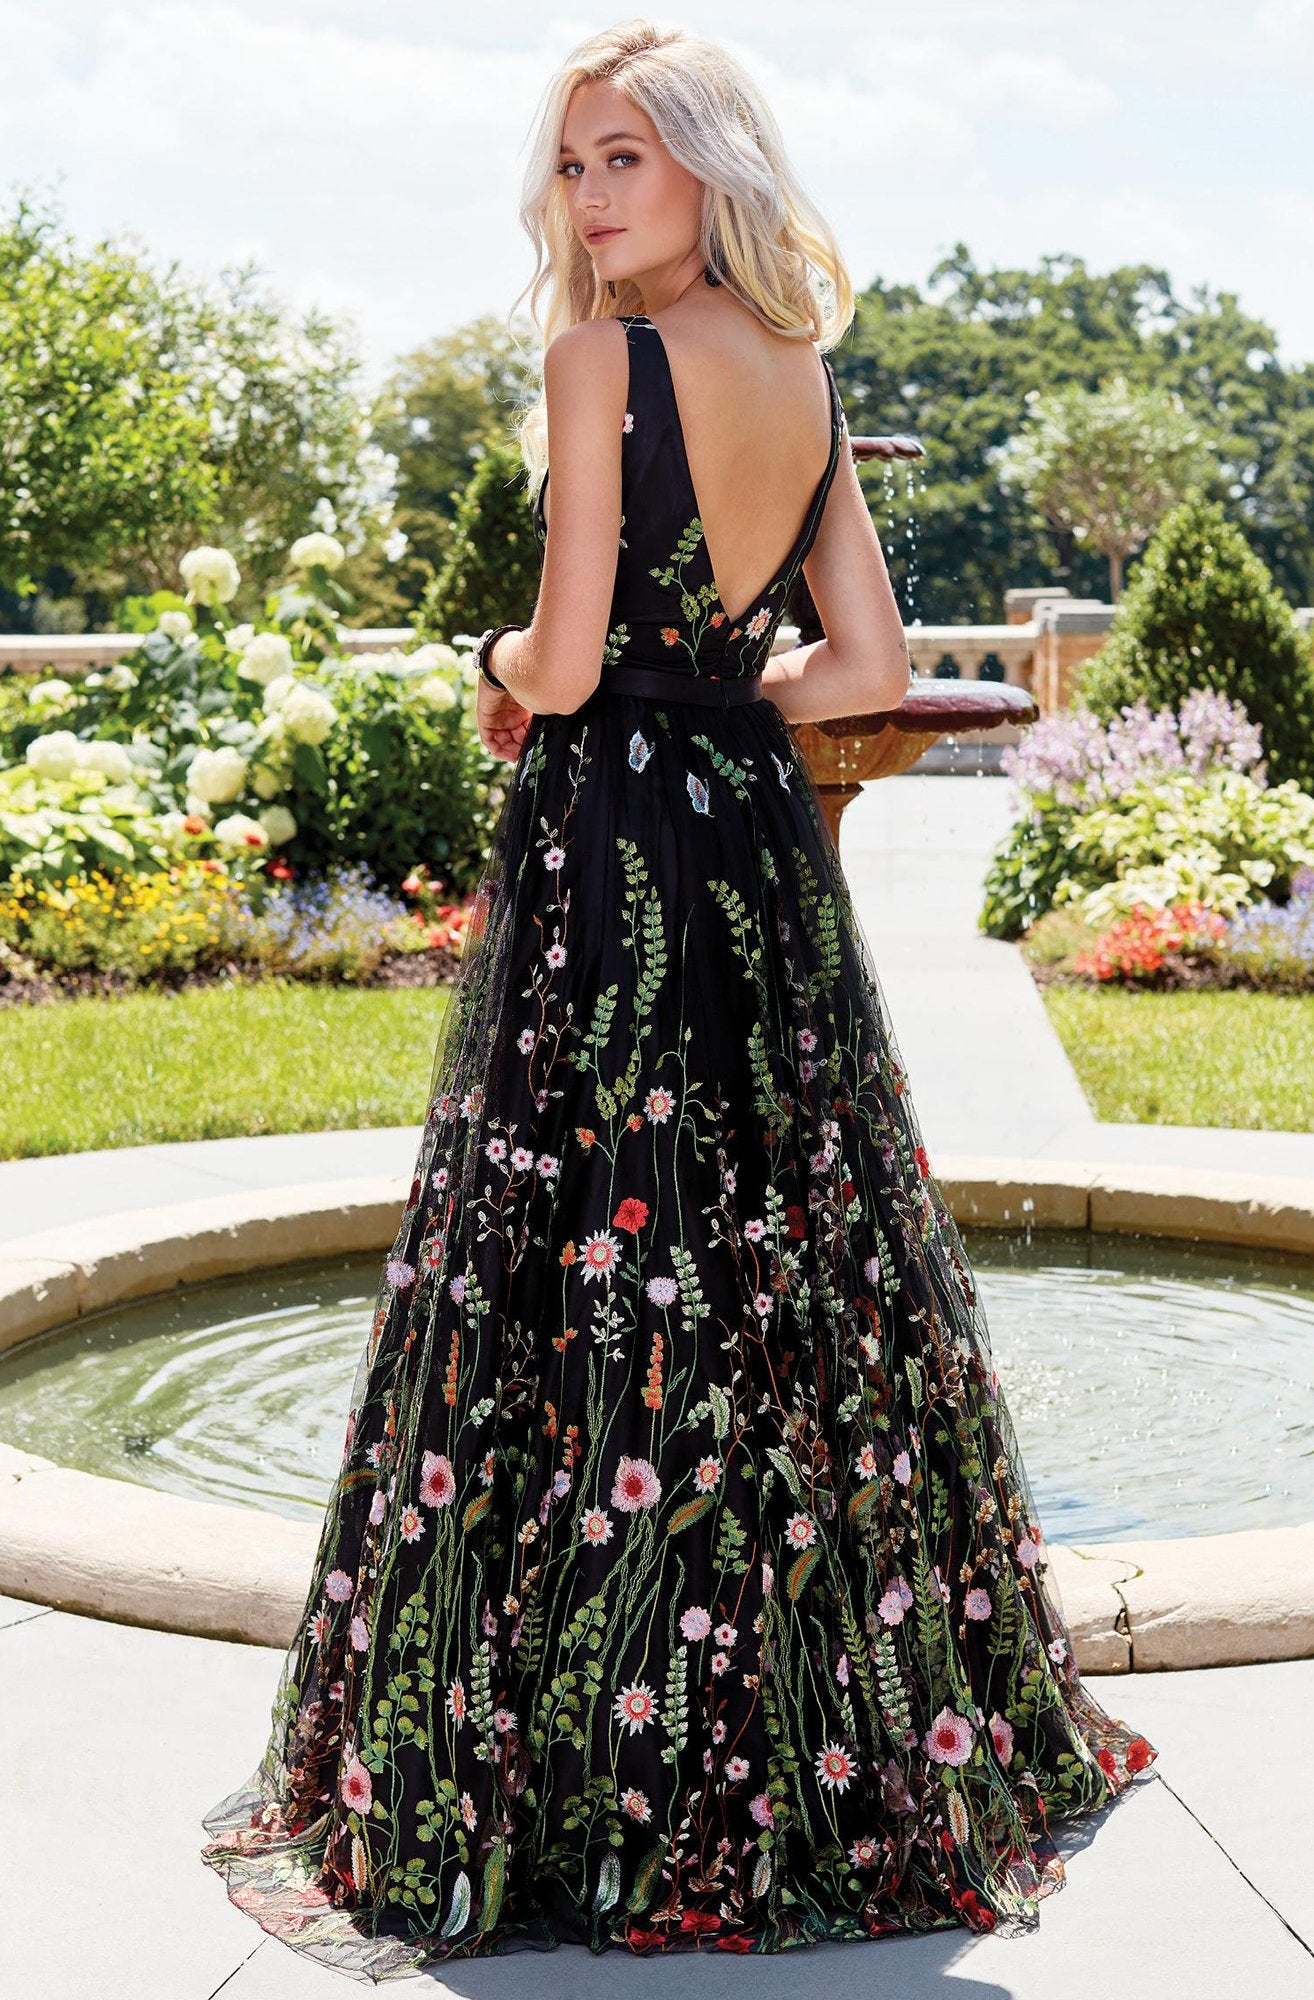 Clarisse - Plunging V-Neck Floral Tulle A-Line Gown 3565 In Black and Multi-Color